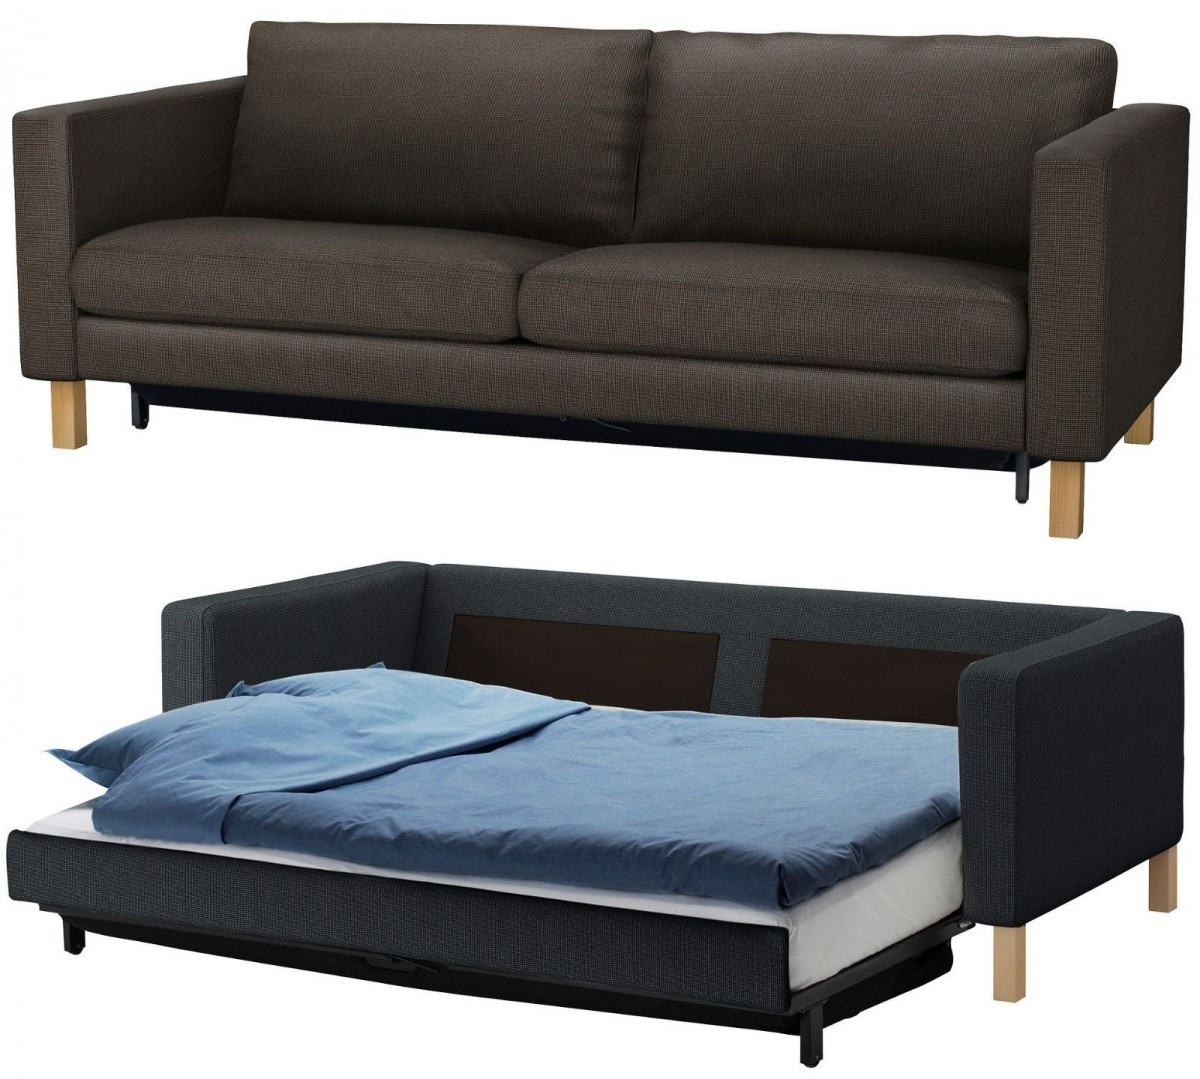 ikea sofa sleeper sectional acieona reclining with drop down table enhancing a stylish home